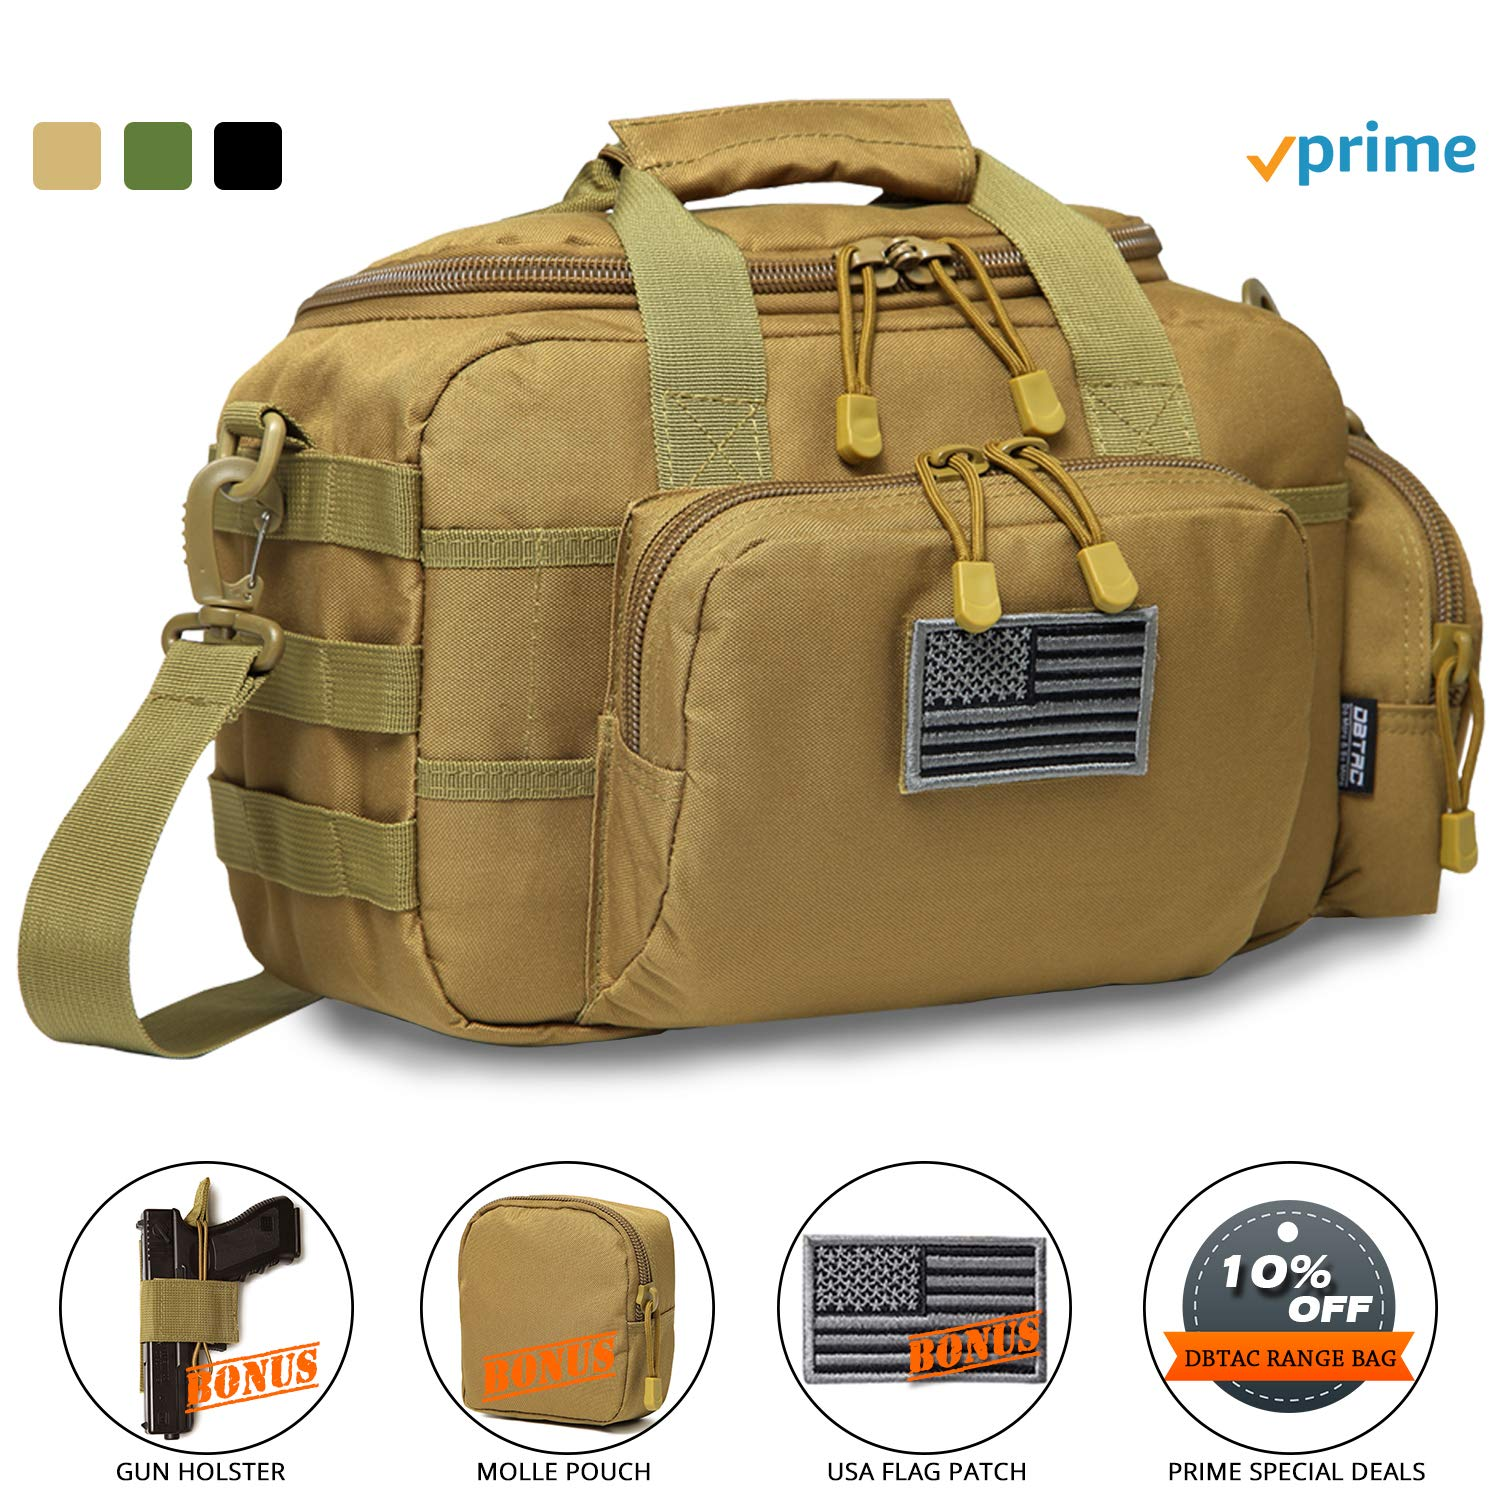 DBTAC Gun Range Bag Small | Tactical 2X Pistol Shooting Range Duffle Bag with Lockable Zipper for Handguns and Ammo | Free Molle Pouch, Hook-Fastener Gun Holster and US Flag Patch Included (Tan) by DBTAC